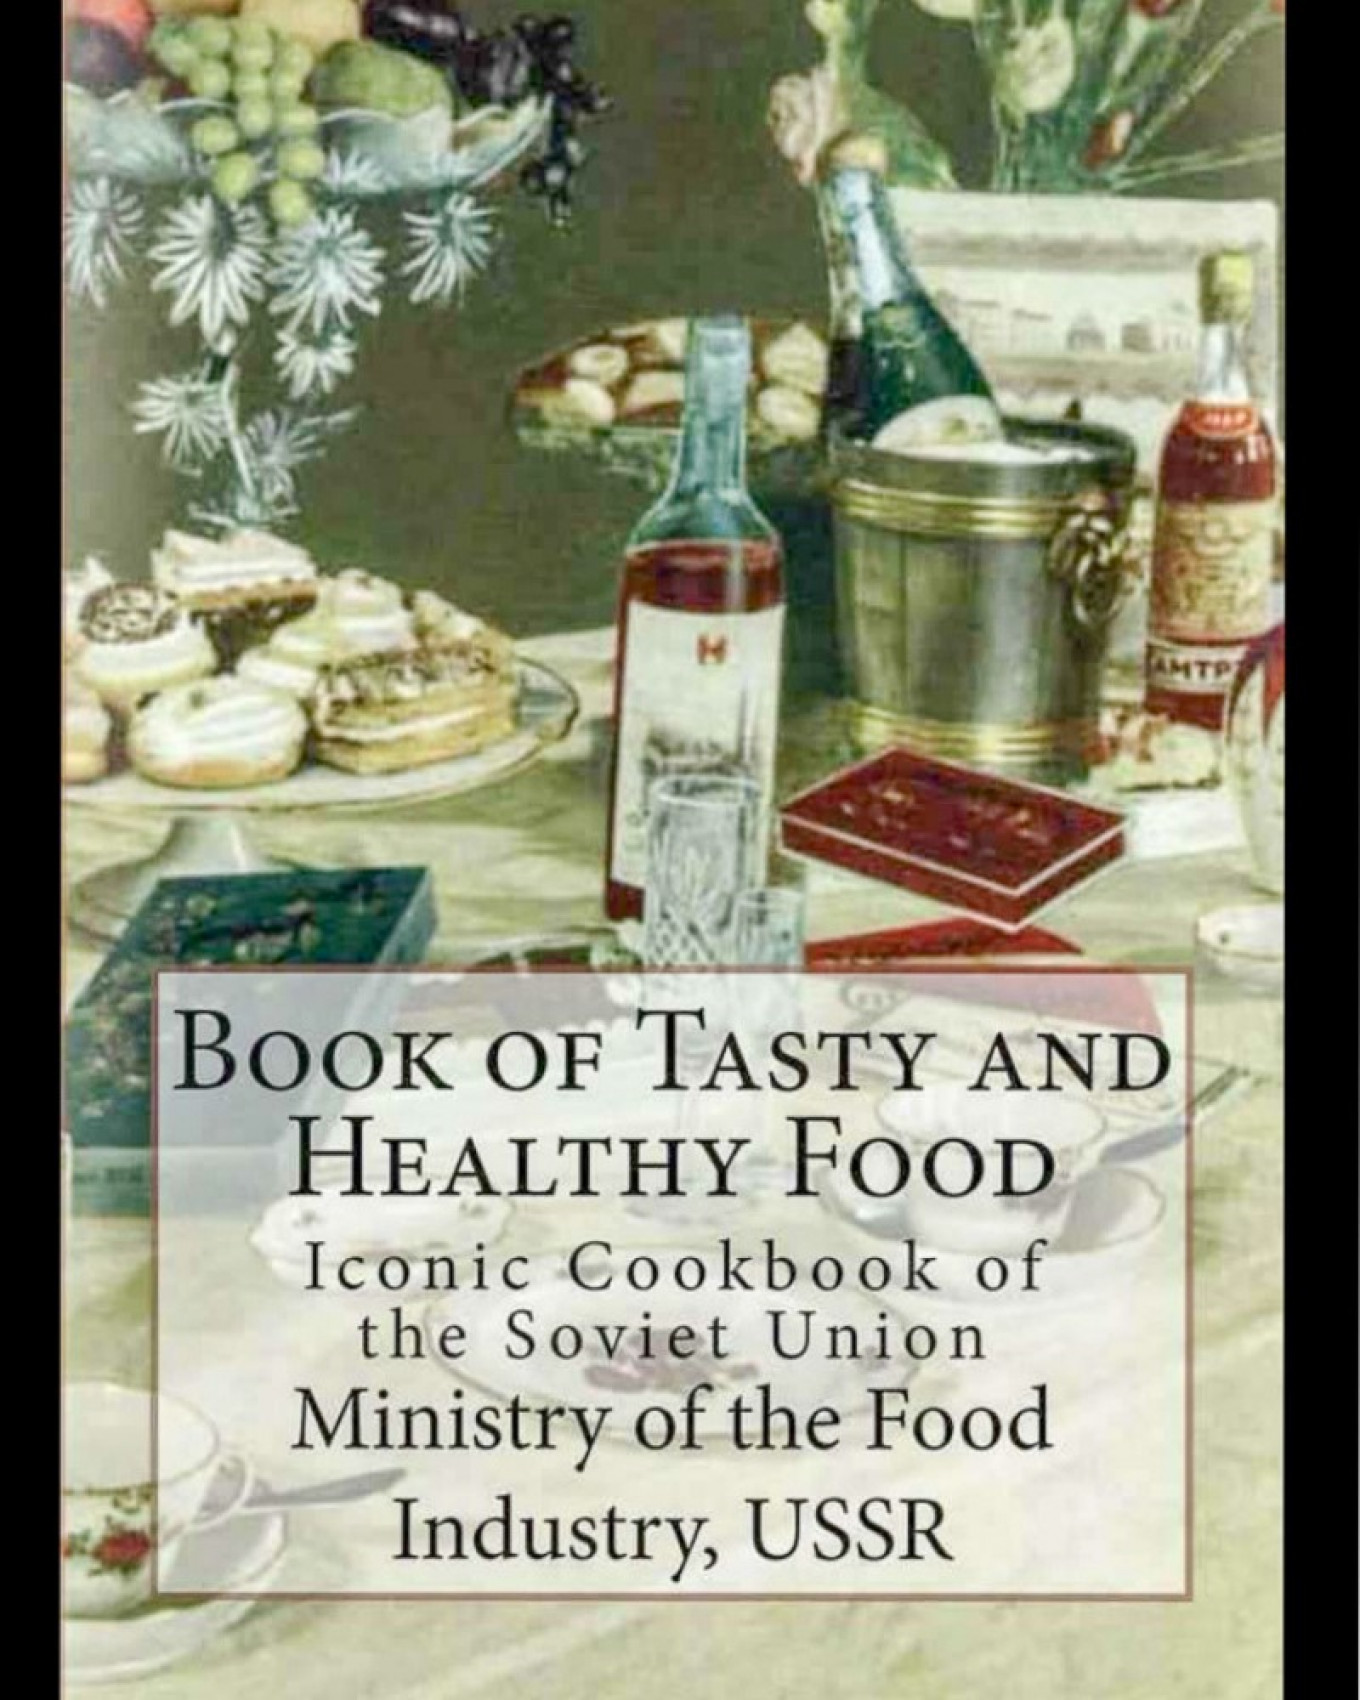 The book in every kitchen. Courtesy of SkyPeak Publishing